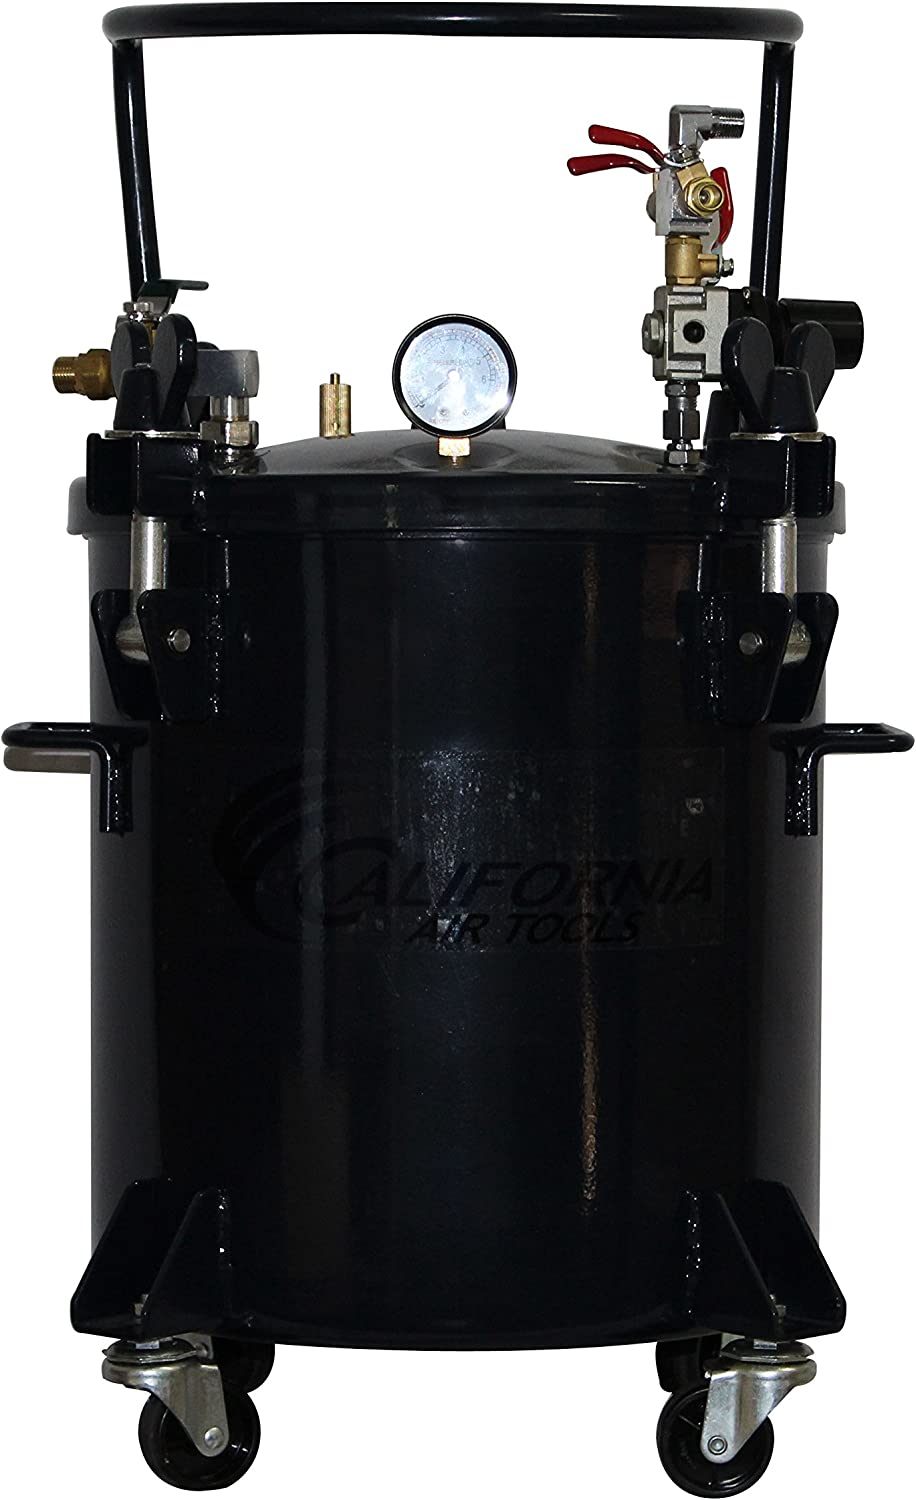 California Air Tools CAT-365C 5 gallon Pressure Pot For Casting, Black